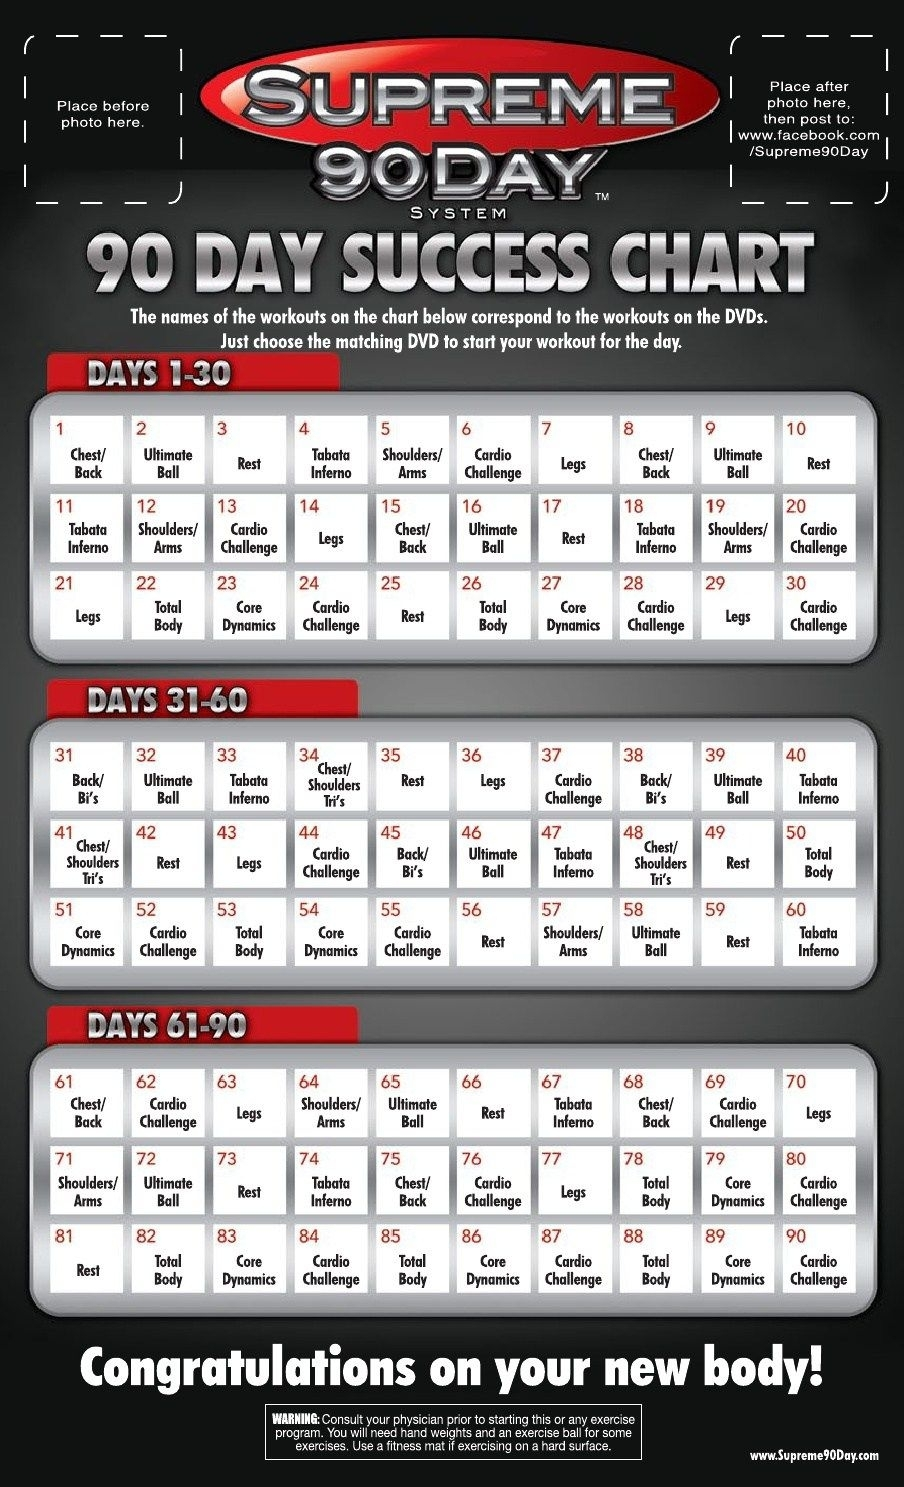 Supreme 90 Day Workout Schedule With Time | Supreme 90 Day